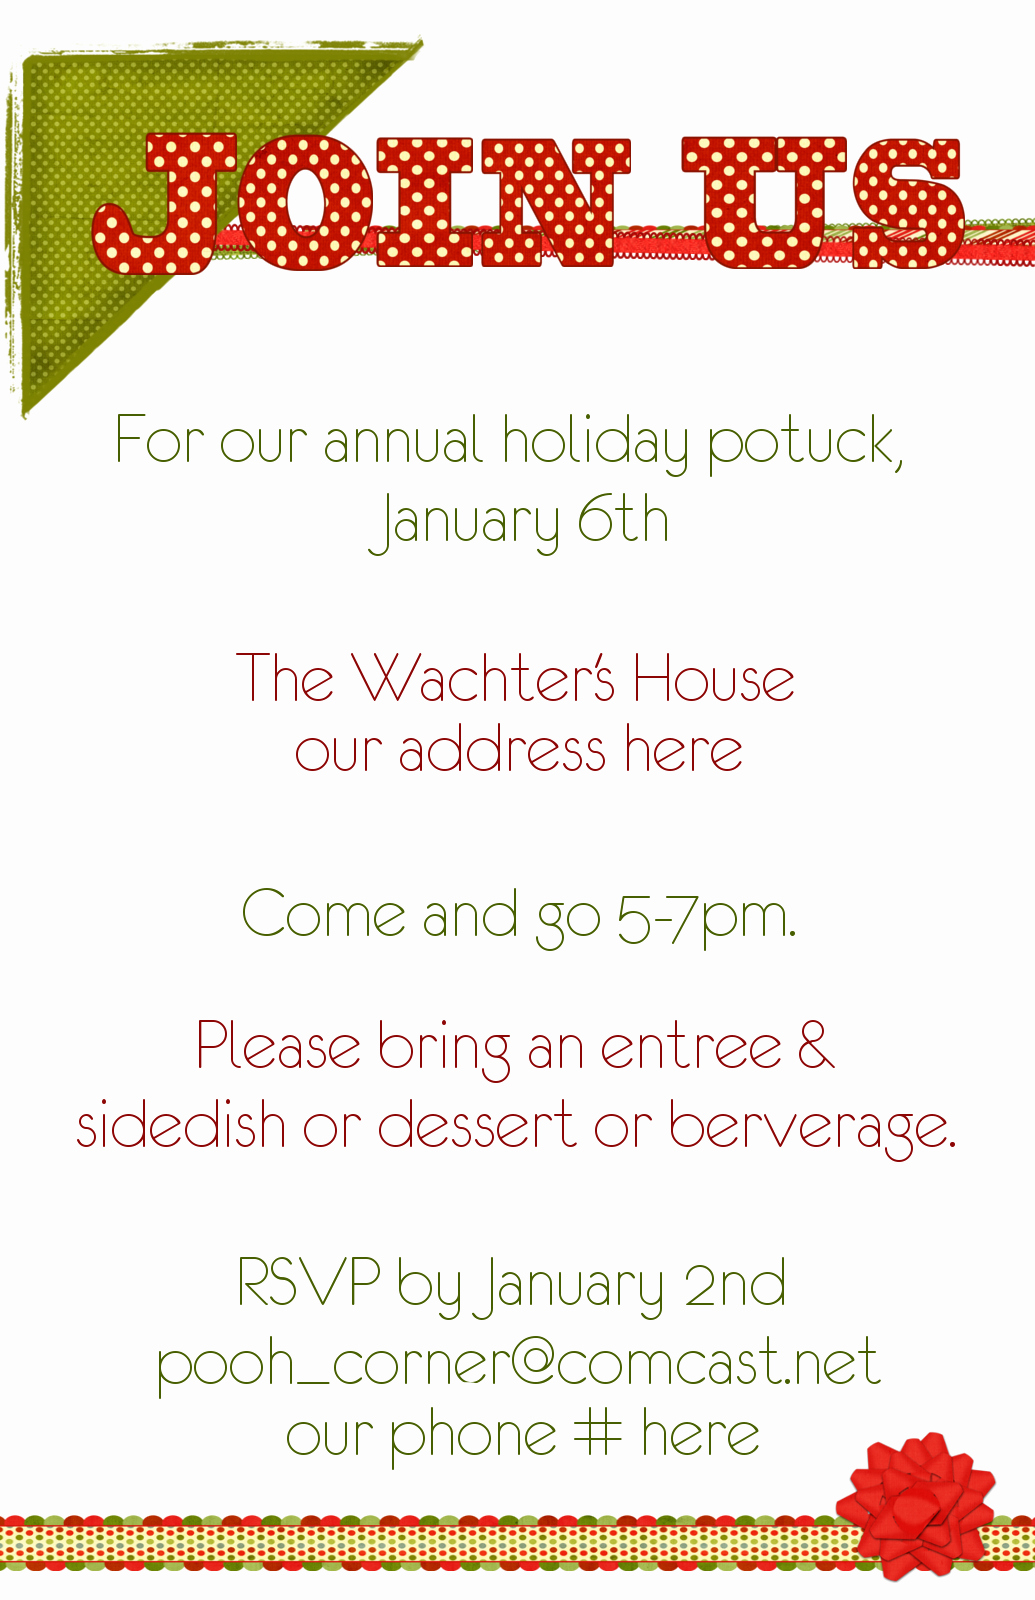 Christmas Potluck Invitation Wording Beautiful Potluck Dinner Invitations